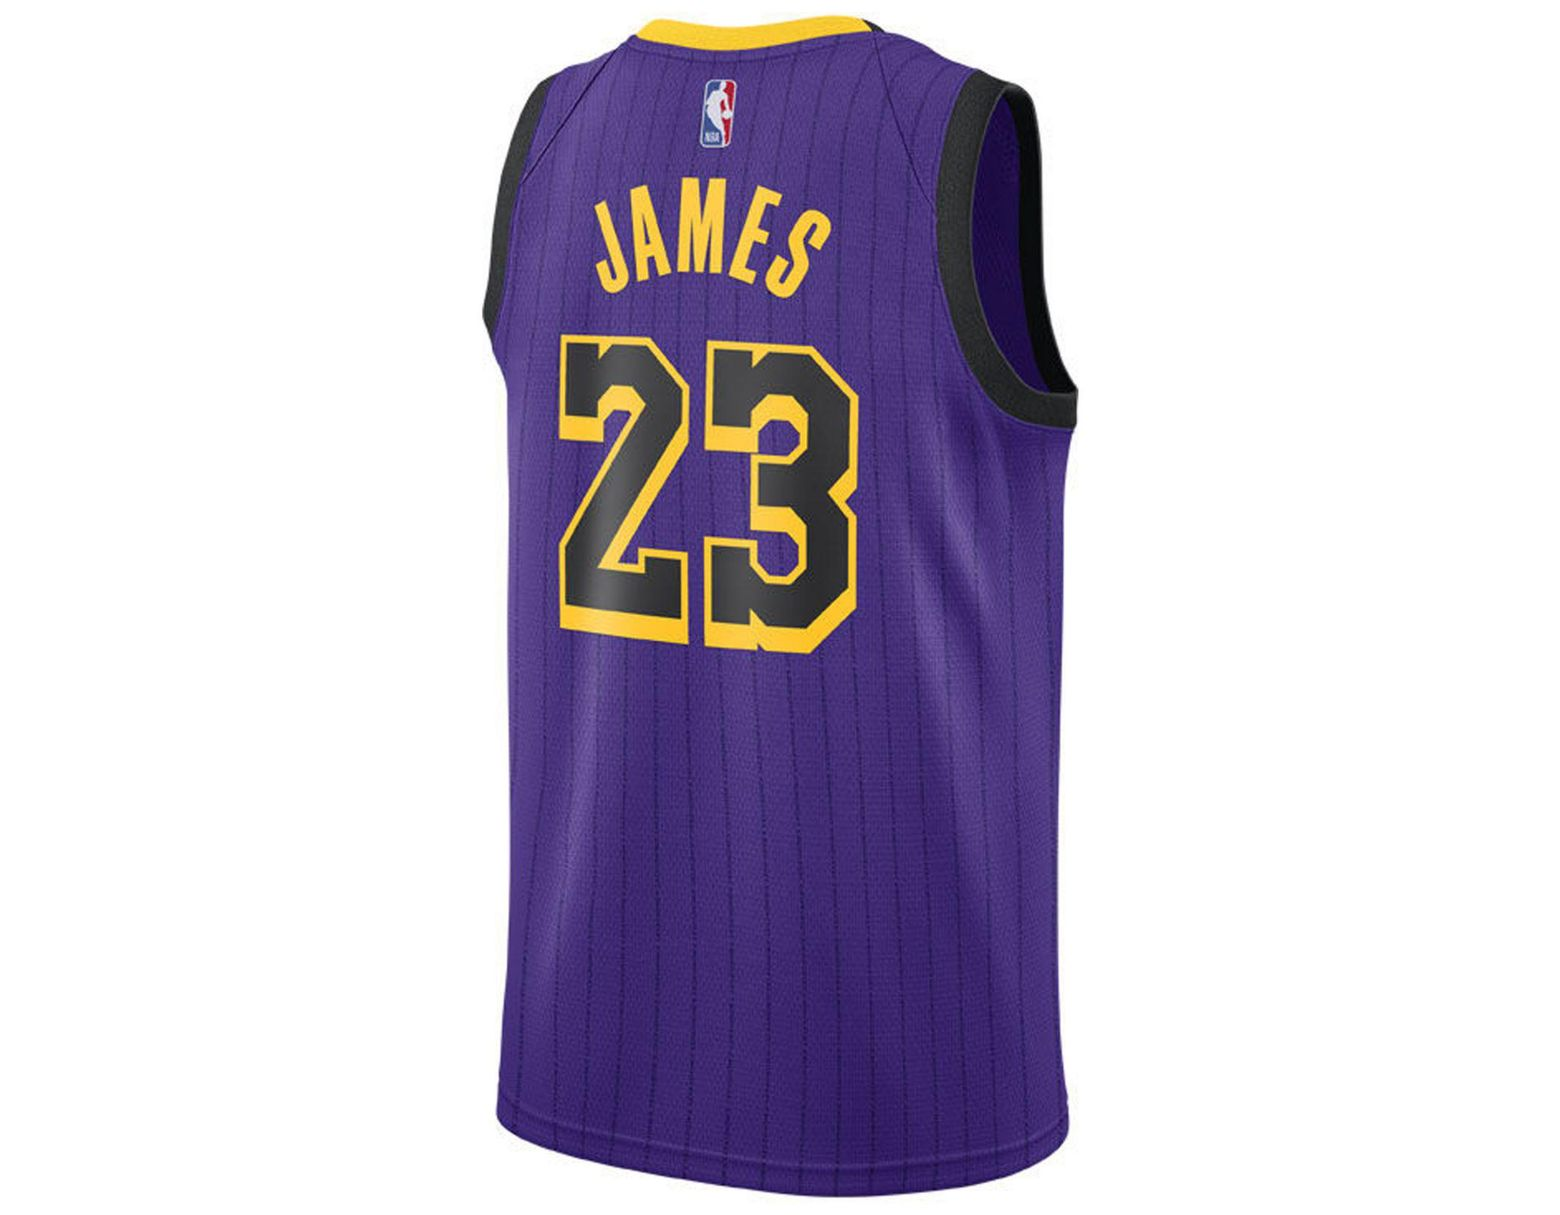 a88c25a64 Nike Lebron James Los Angeles Lakers City Swingman Jersey 2018 in Purple  for Men - Save 7% - Lyst